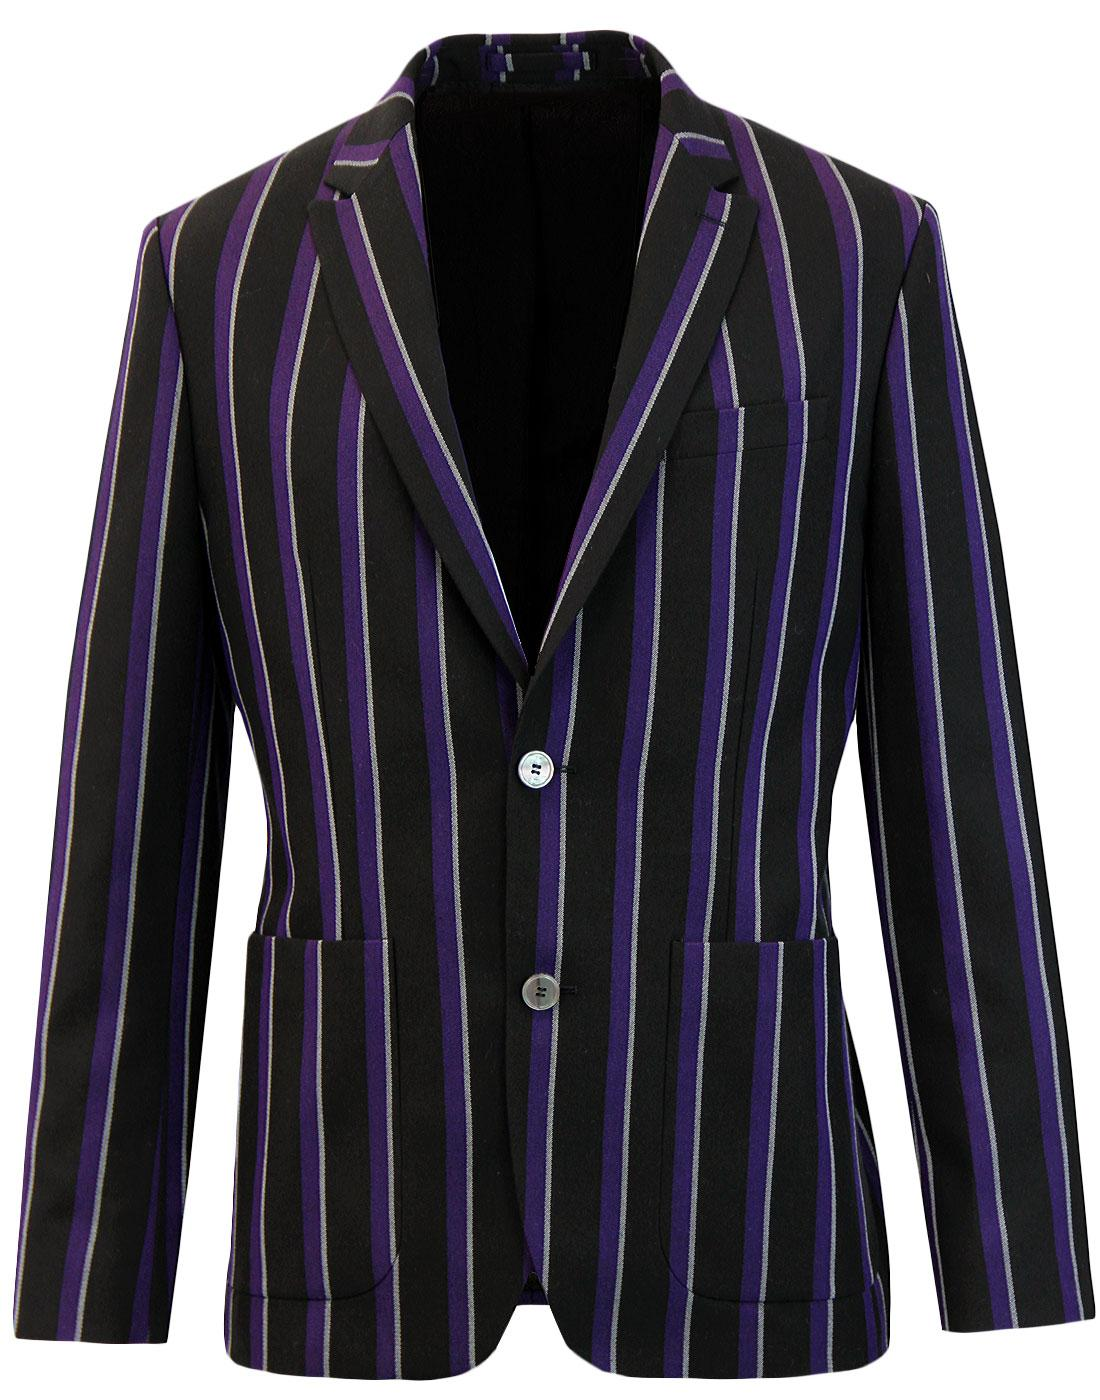 Mayfield PRETTY GREEN Mod Stripe Boating Blazer